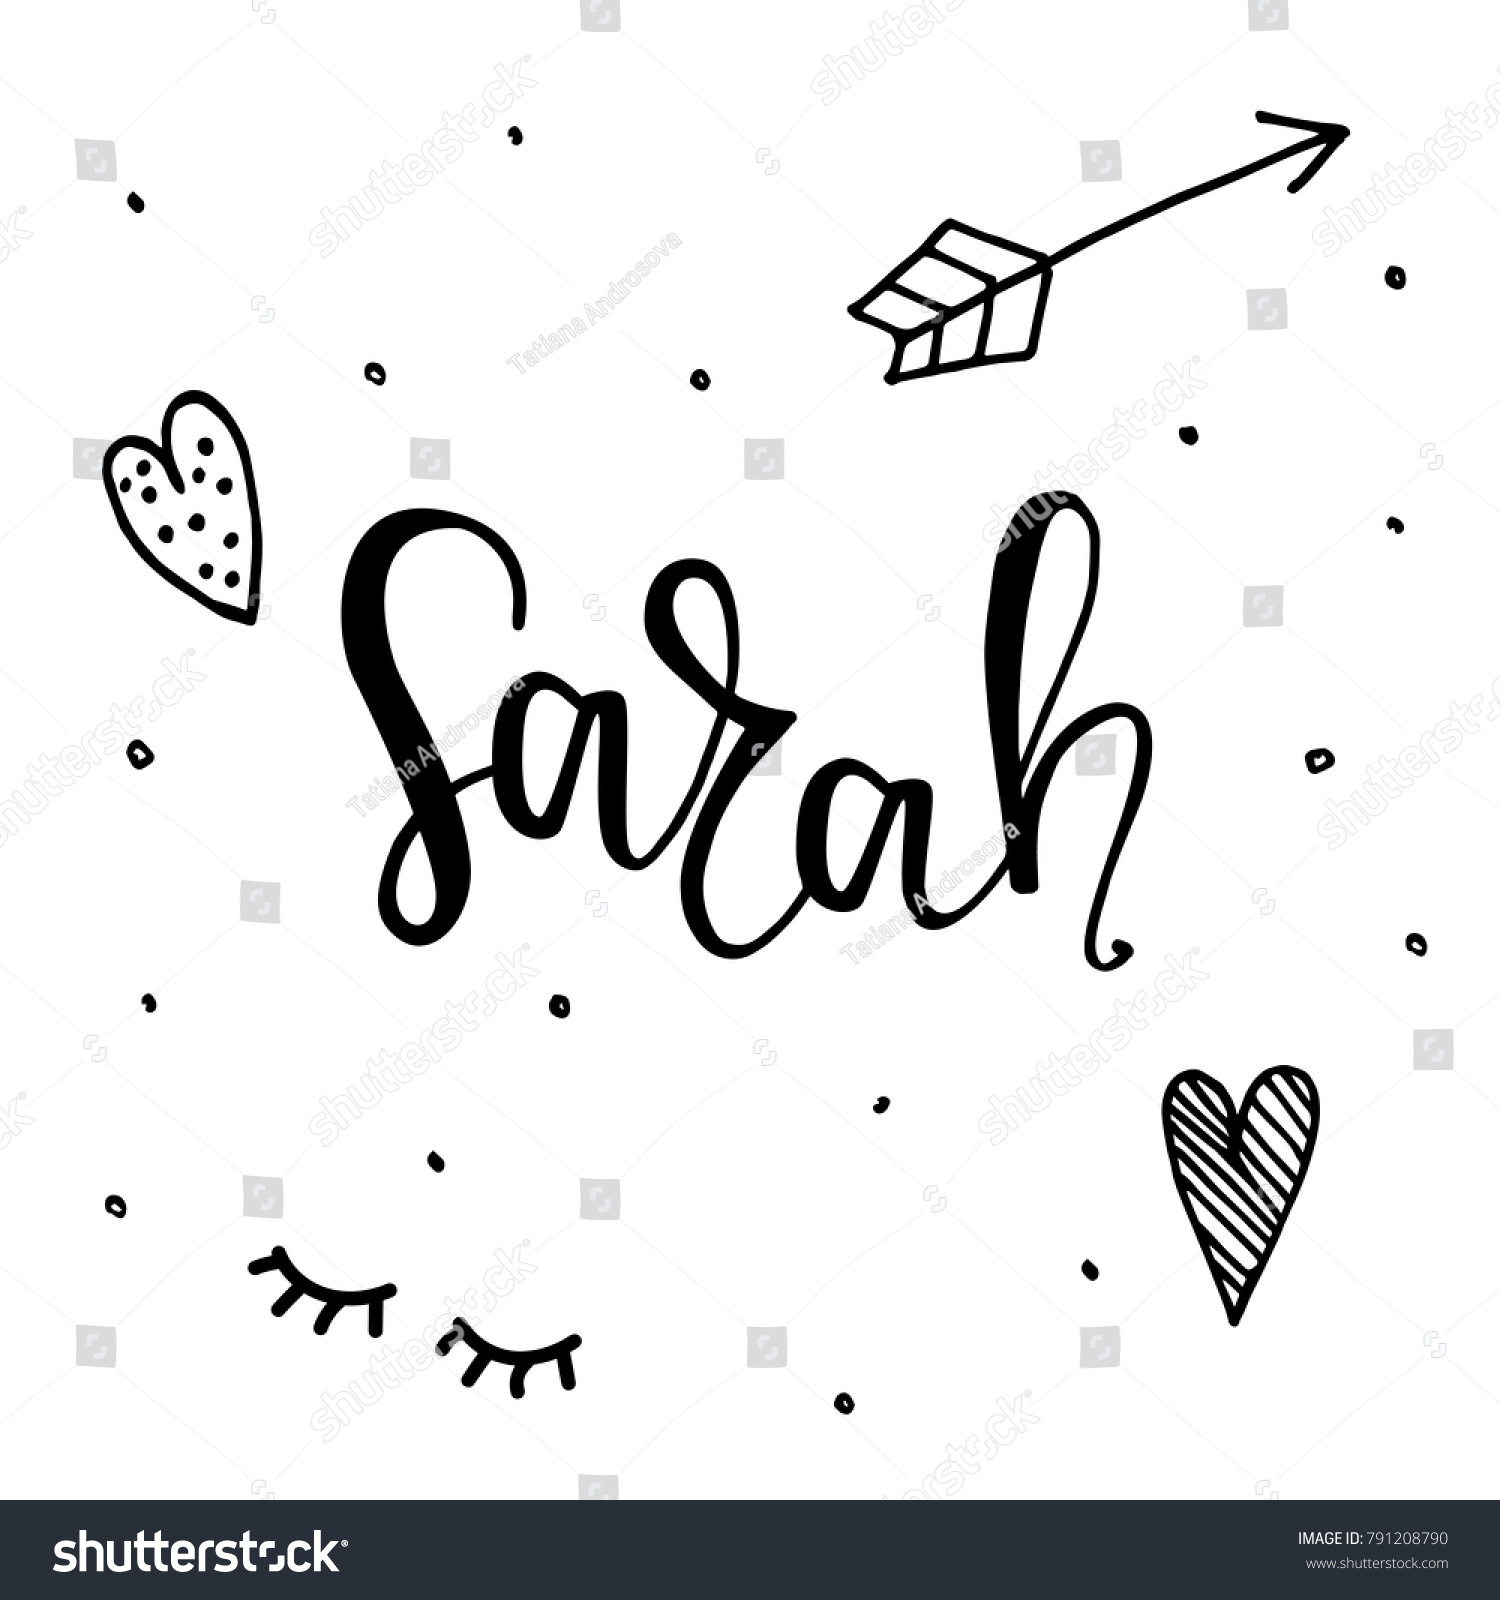 Female name sarah template invitation greeting stock vector royalty female name sarah template for invitation and greeting cards envelopes t shirts stopboris Images